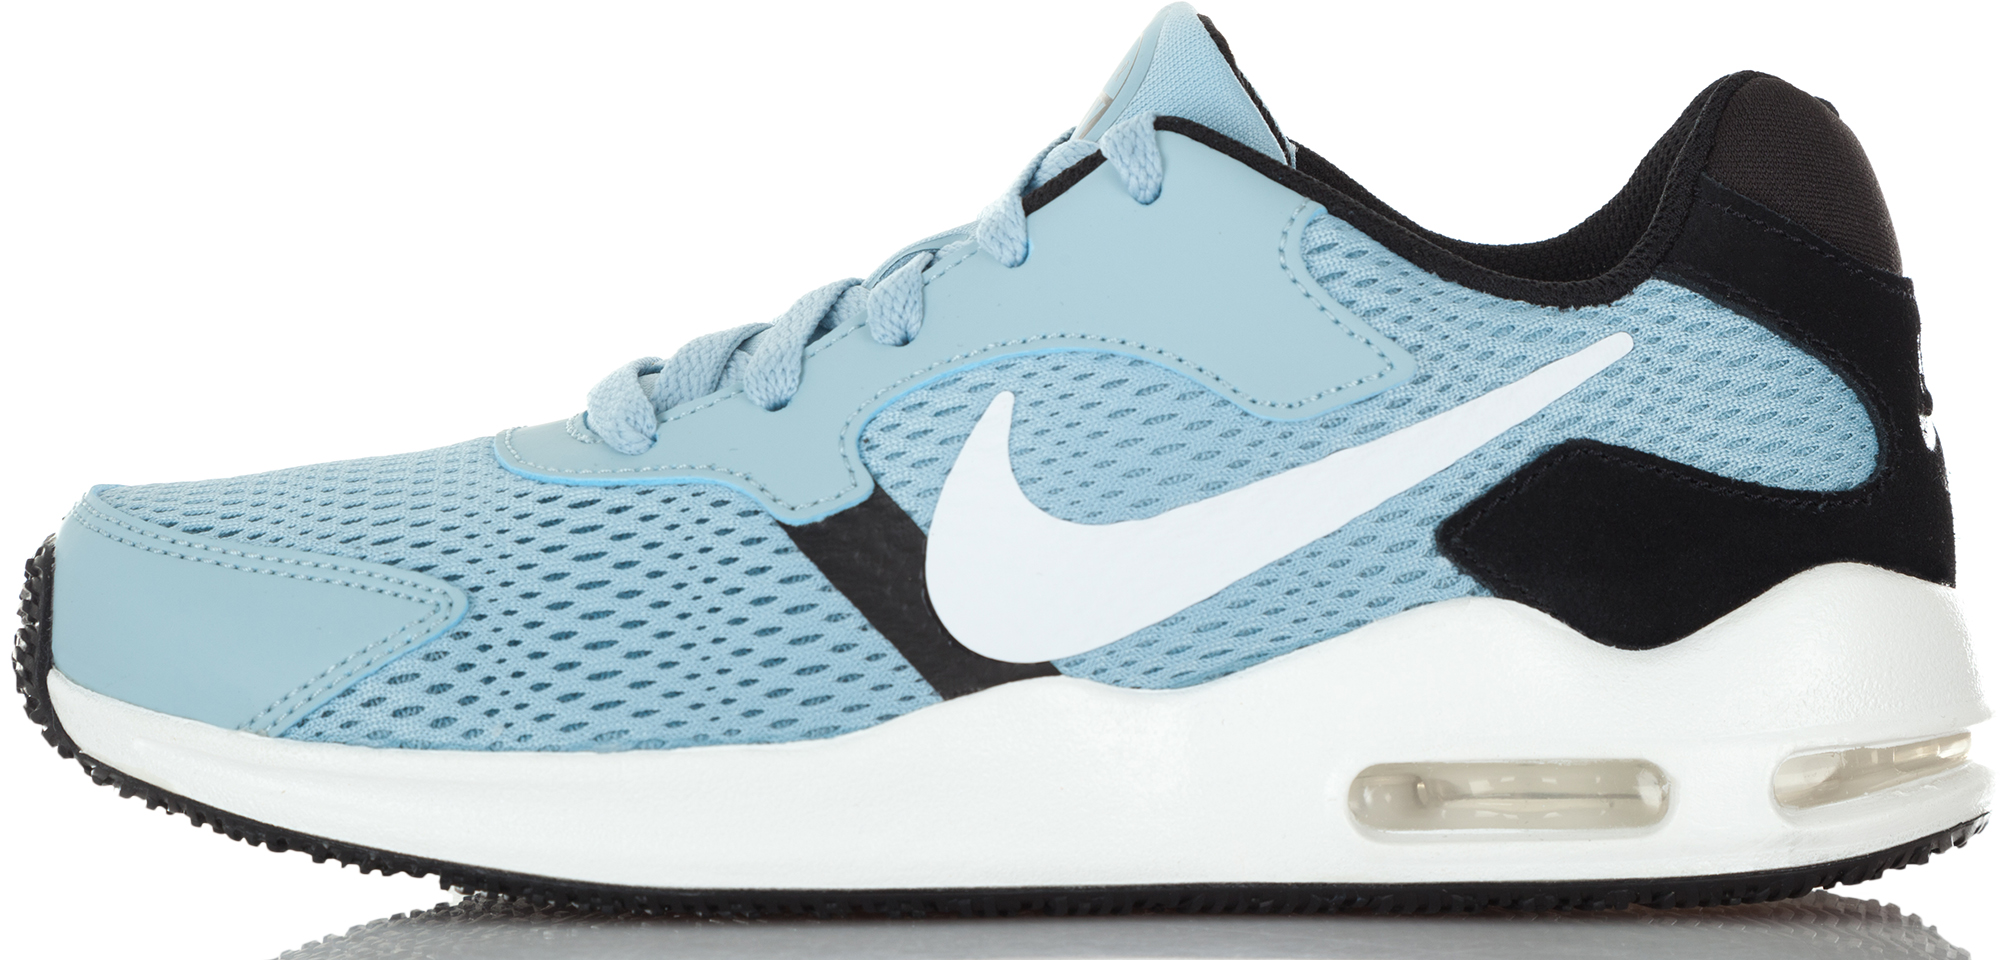 Nike Кроссовки женские Nike Air Max Guile кроссовки nike кроссовки air max motion racer